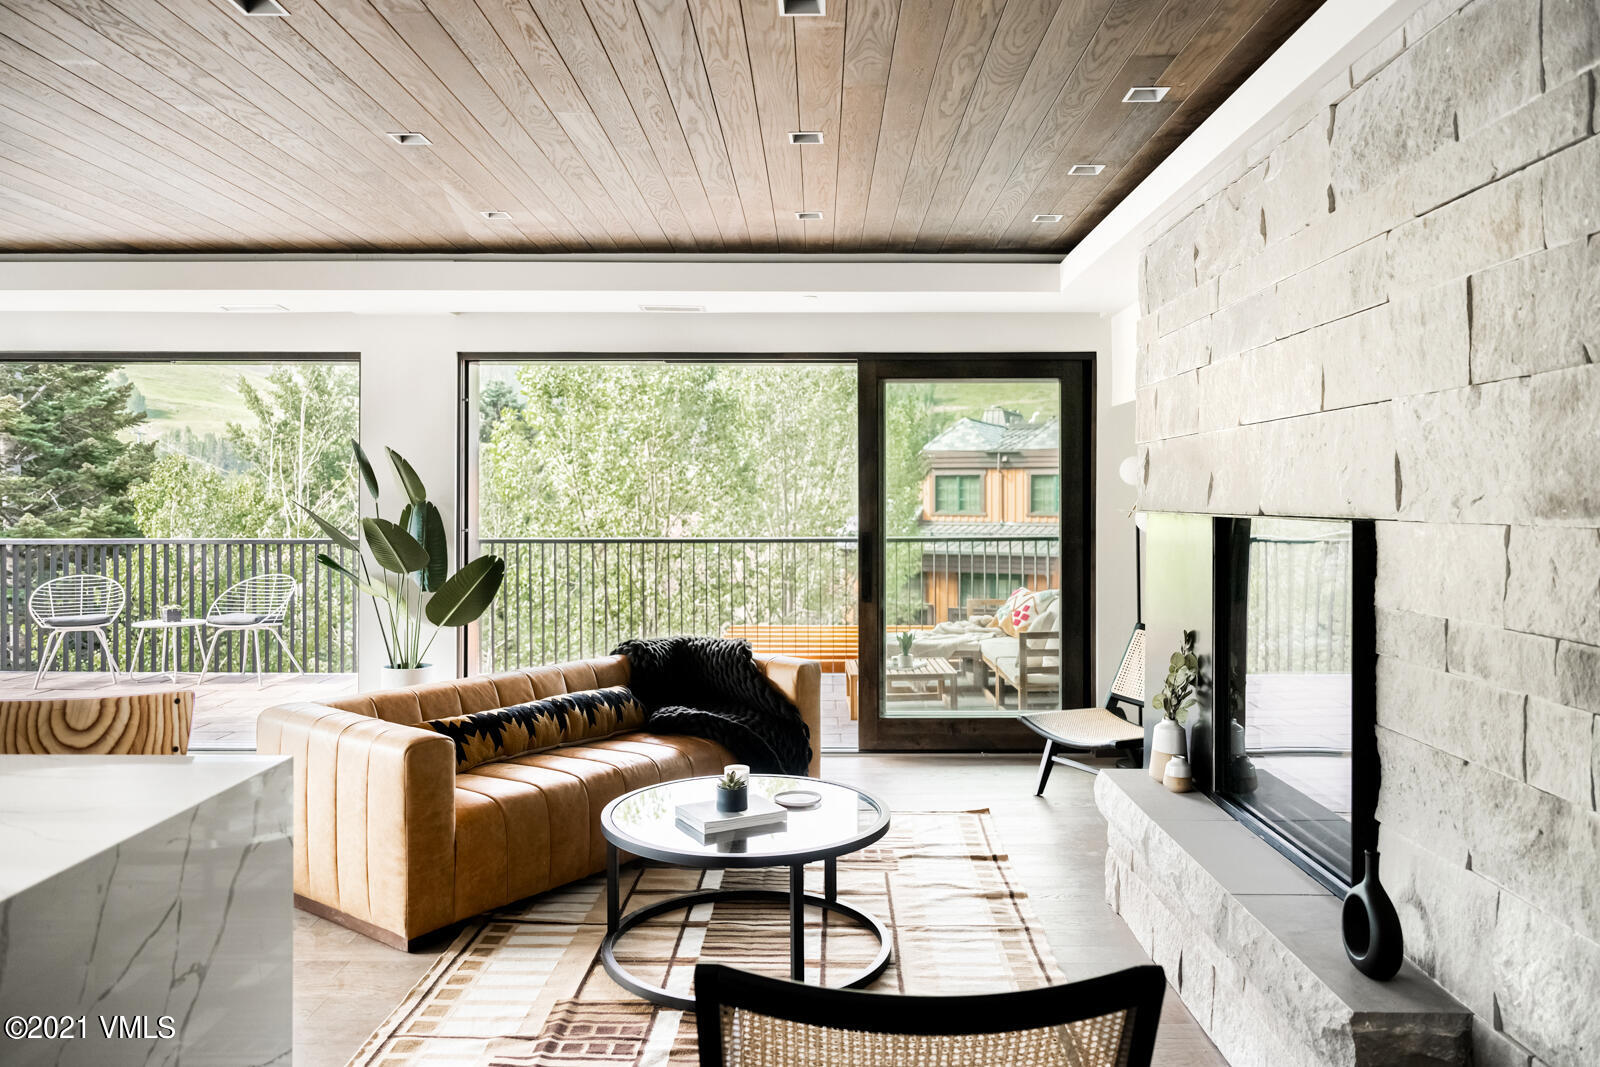 Altus Vail set the new standard for mountain home living in Vail. As one of the most significant new projects in Vail Village in over ten years, owning at Altus means you will enjoy the ultimate modern homeownership experience. Altus is a statement of striking, timeless design. The residences themselves feel like single-family homes - with the spaciousness, attention to detail and privacy that creates complete comfort. And with specular views of Vail Mountain and easy access connecting you to the best of Vail, there is simply nothing else like it. And with only 15 luxury residences for sale in the community, ownership is limited and truly special.Buyer and/or Buyer's agent to verify taxes, square footage and HOA information.  Legal description is subject to change as this home is still under construction.  Monthly HOA fee is estimated at $0.76 per square foot, per month.  Budget to be finalized.  Estimated completion in summer of 2021.